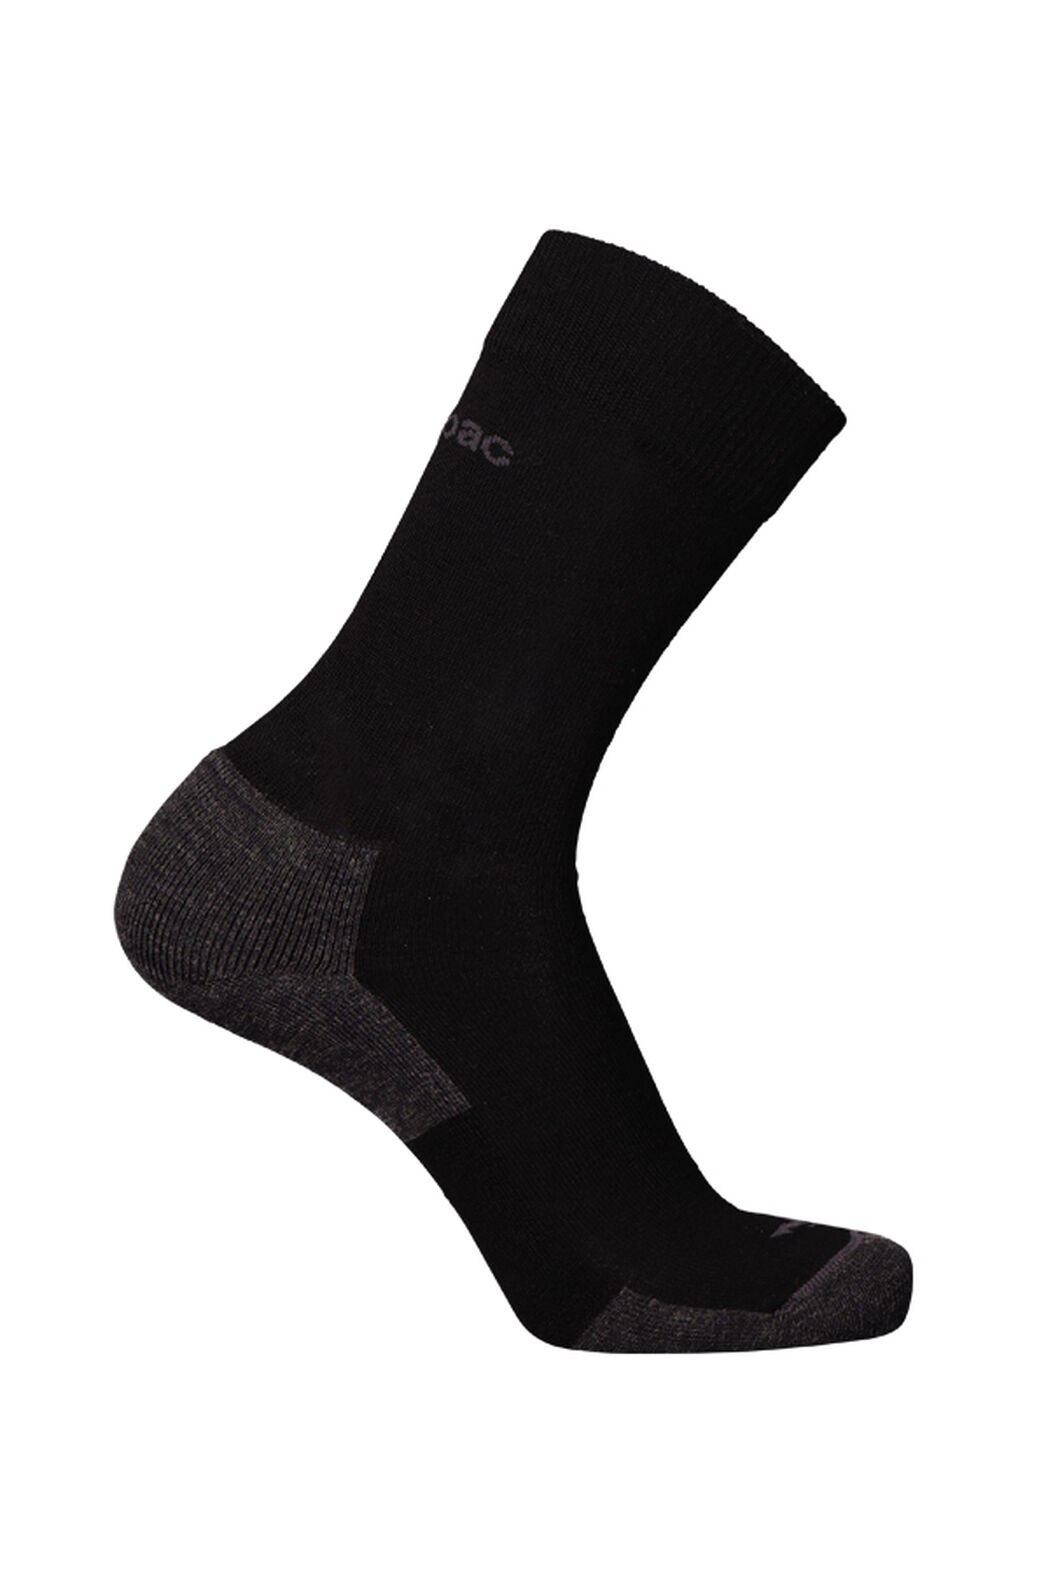 Macpac Merino Blend Footprint Socks, Black, hi-res